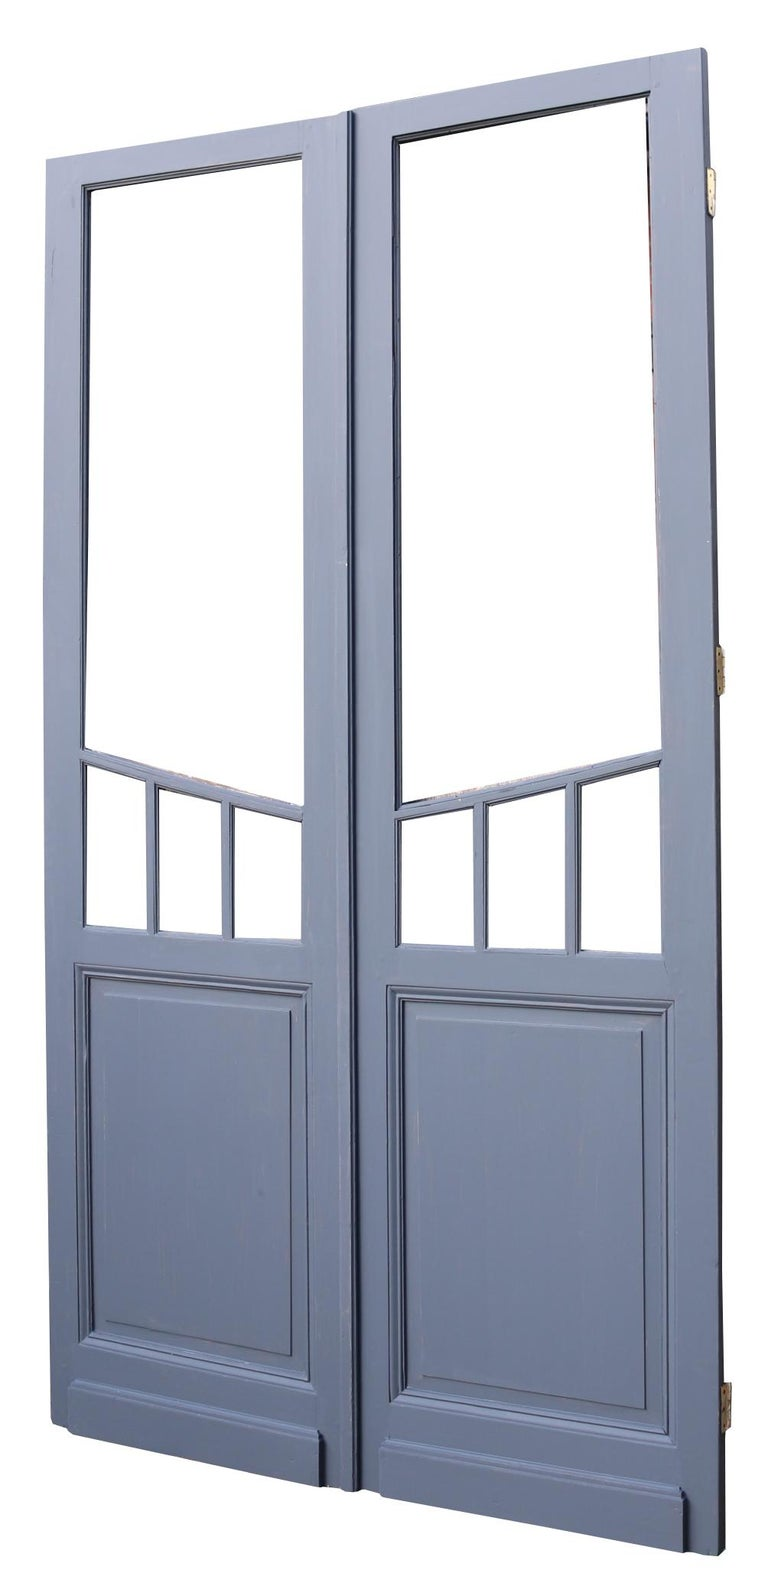 English Pair of Antique Glazed French Double Doors For Sale